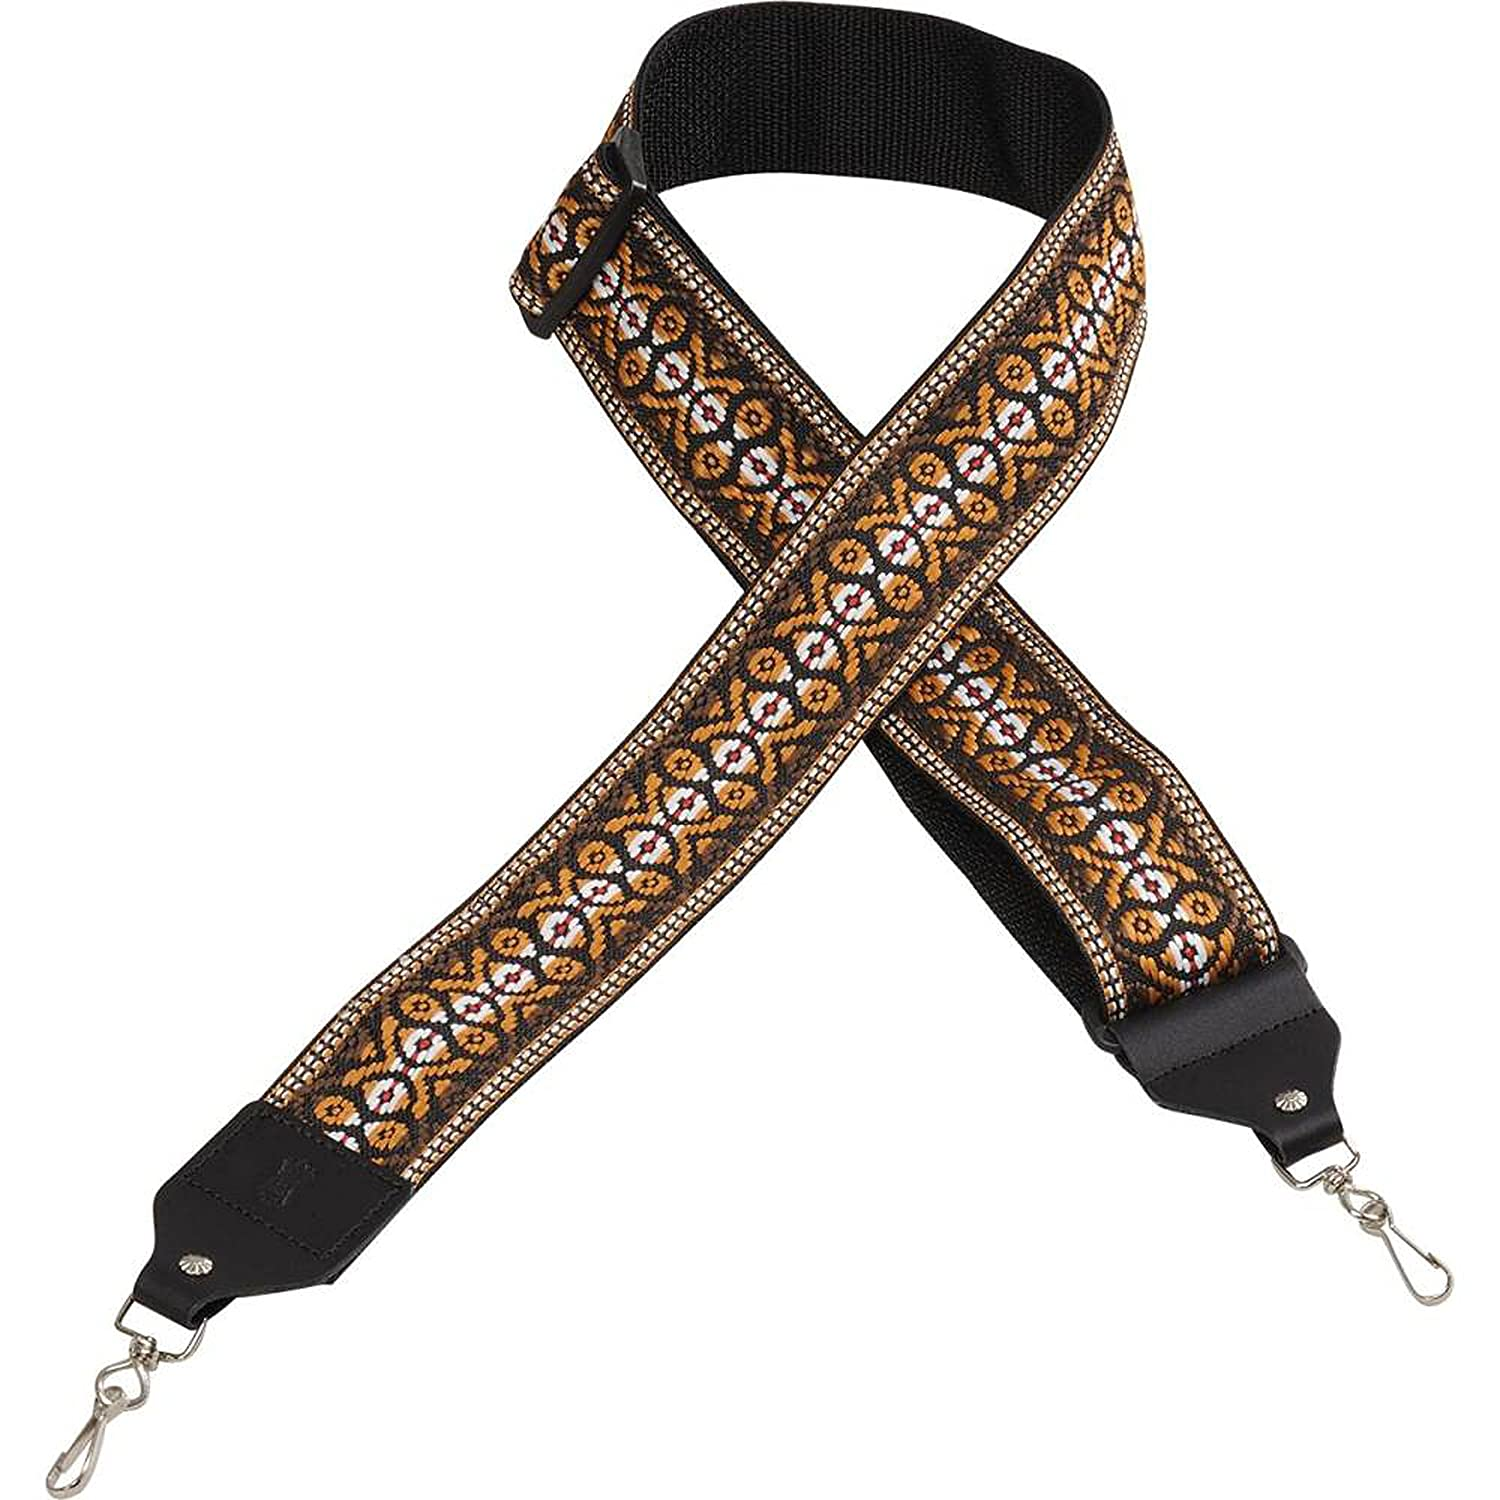 Levy's Leathers M10HT-20 Jacquard Weave Banjo Strap Levy' s Leathers